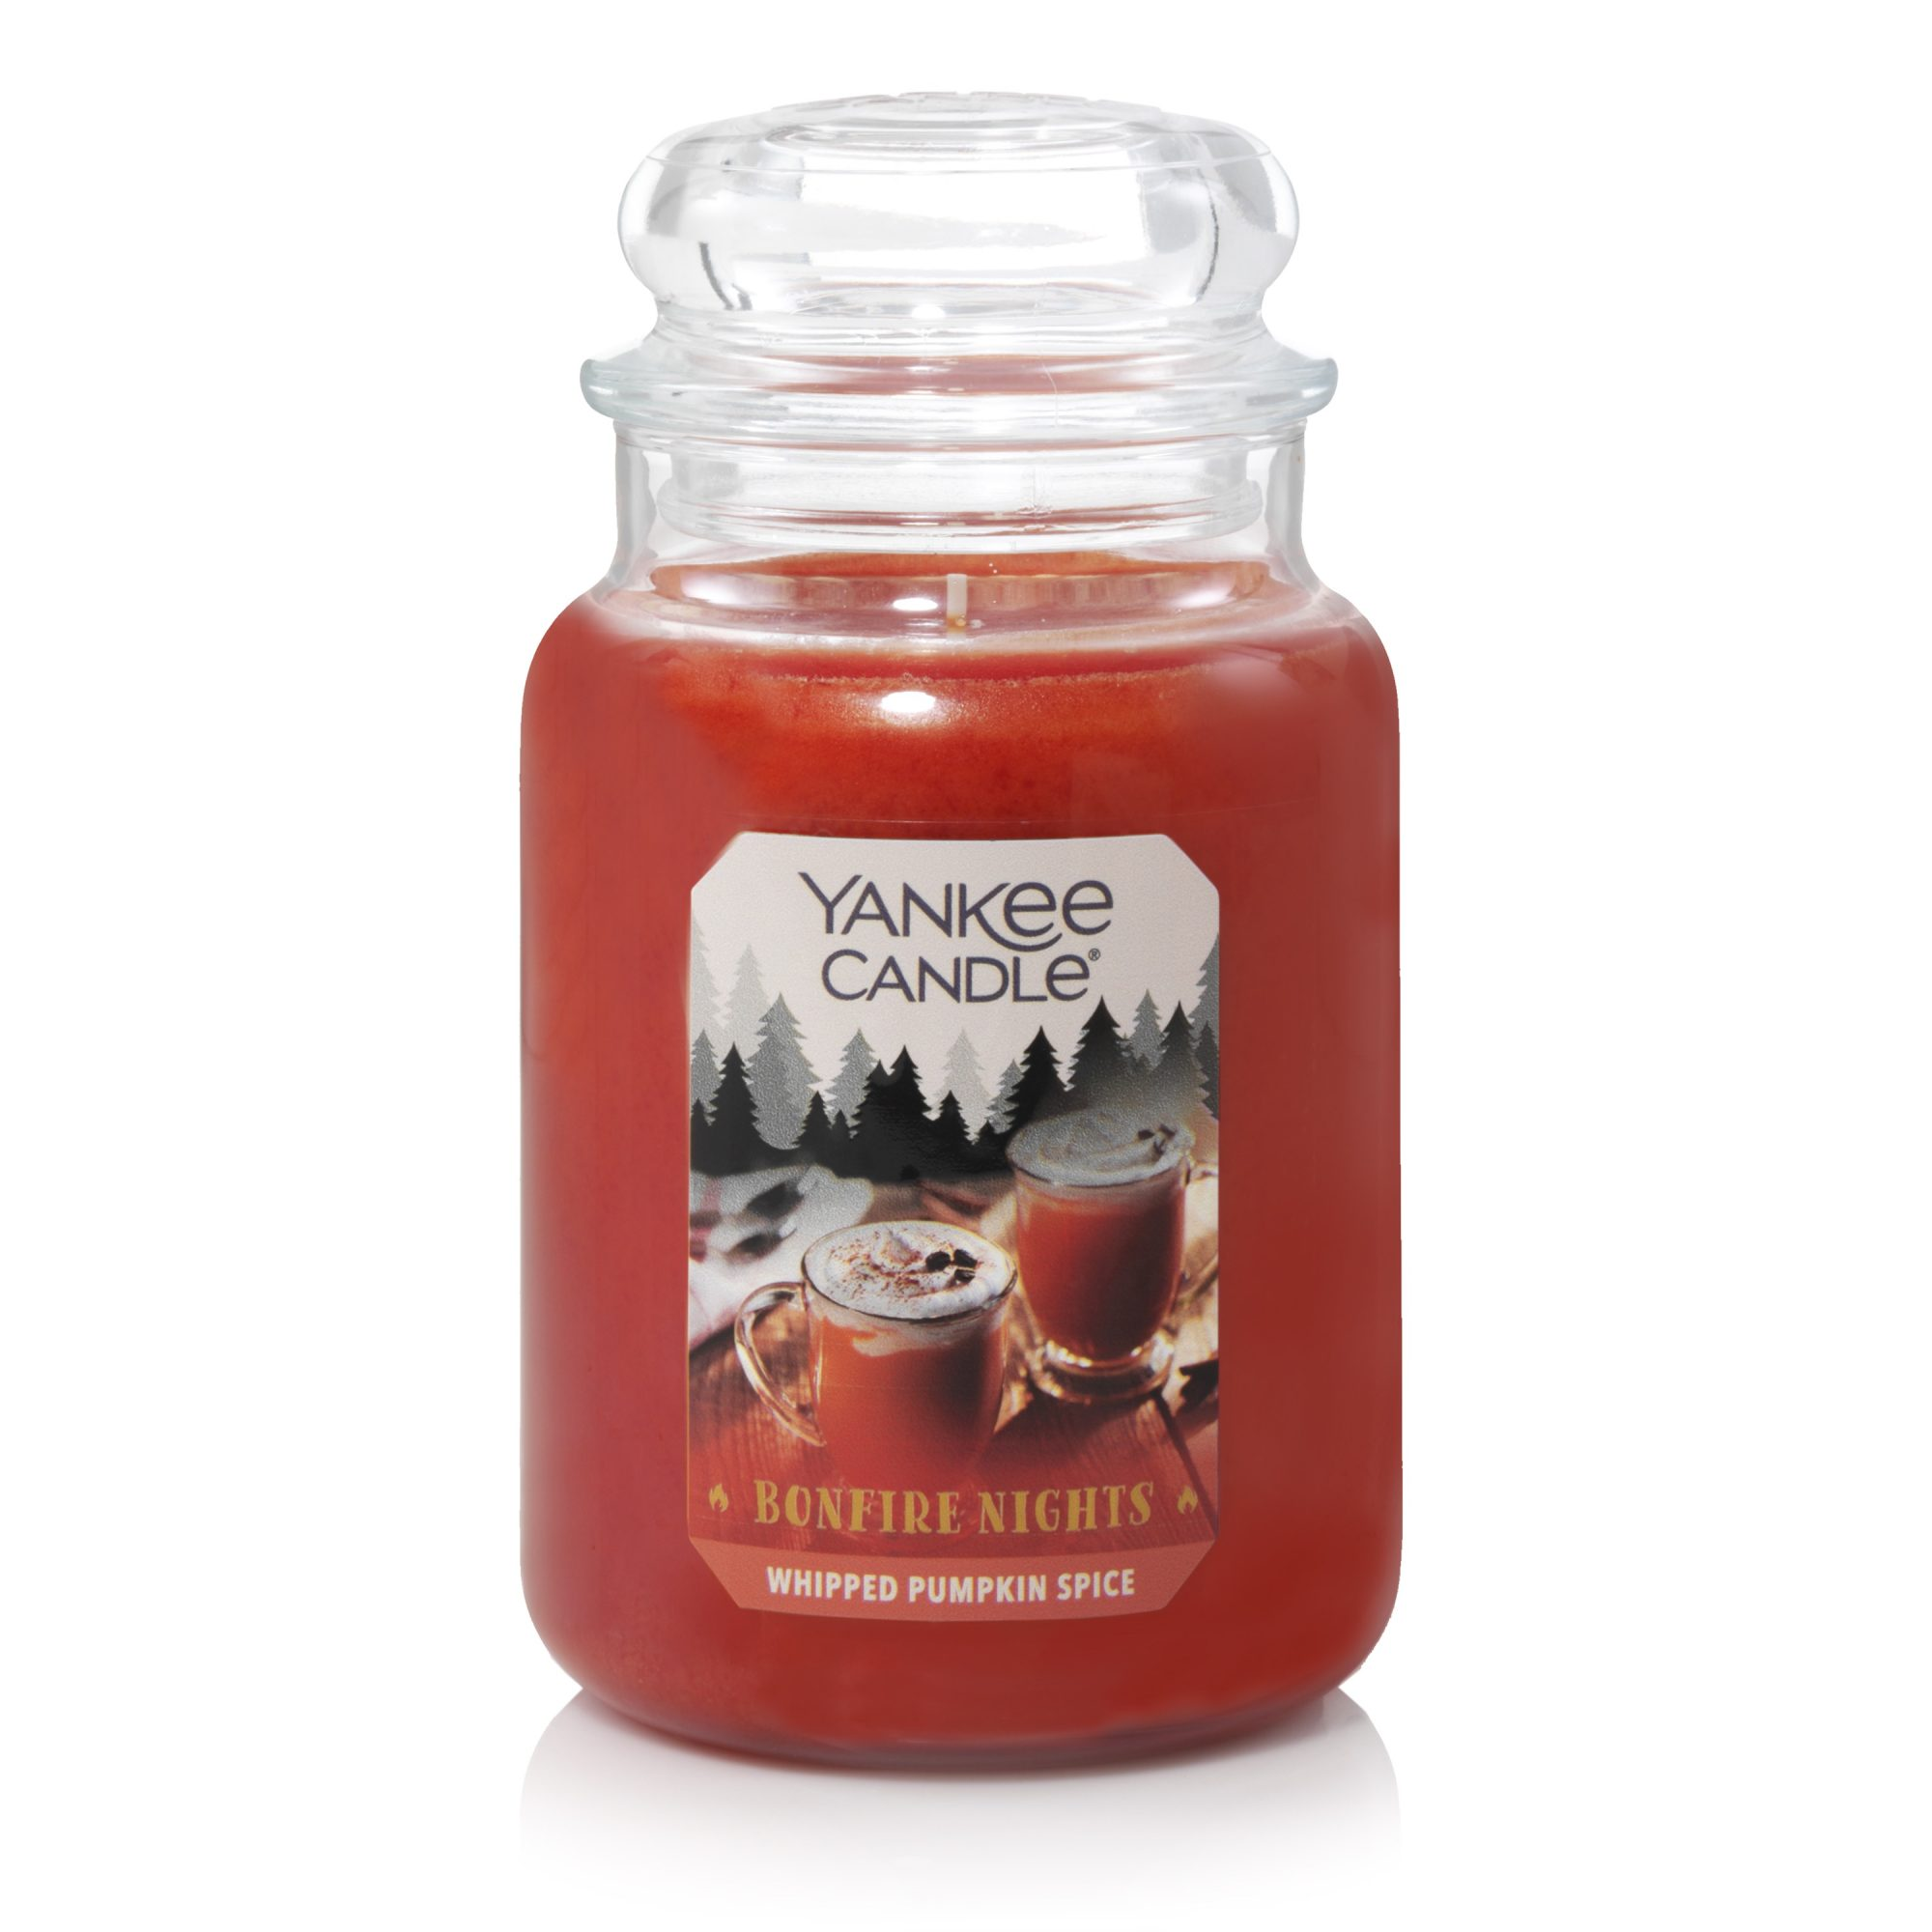 orange candle in glass jar